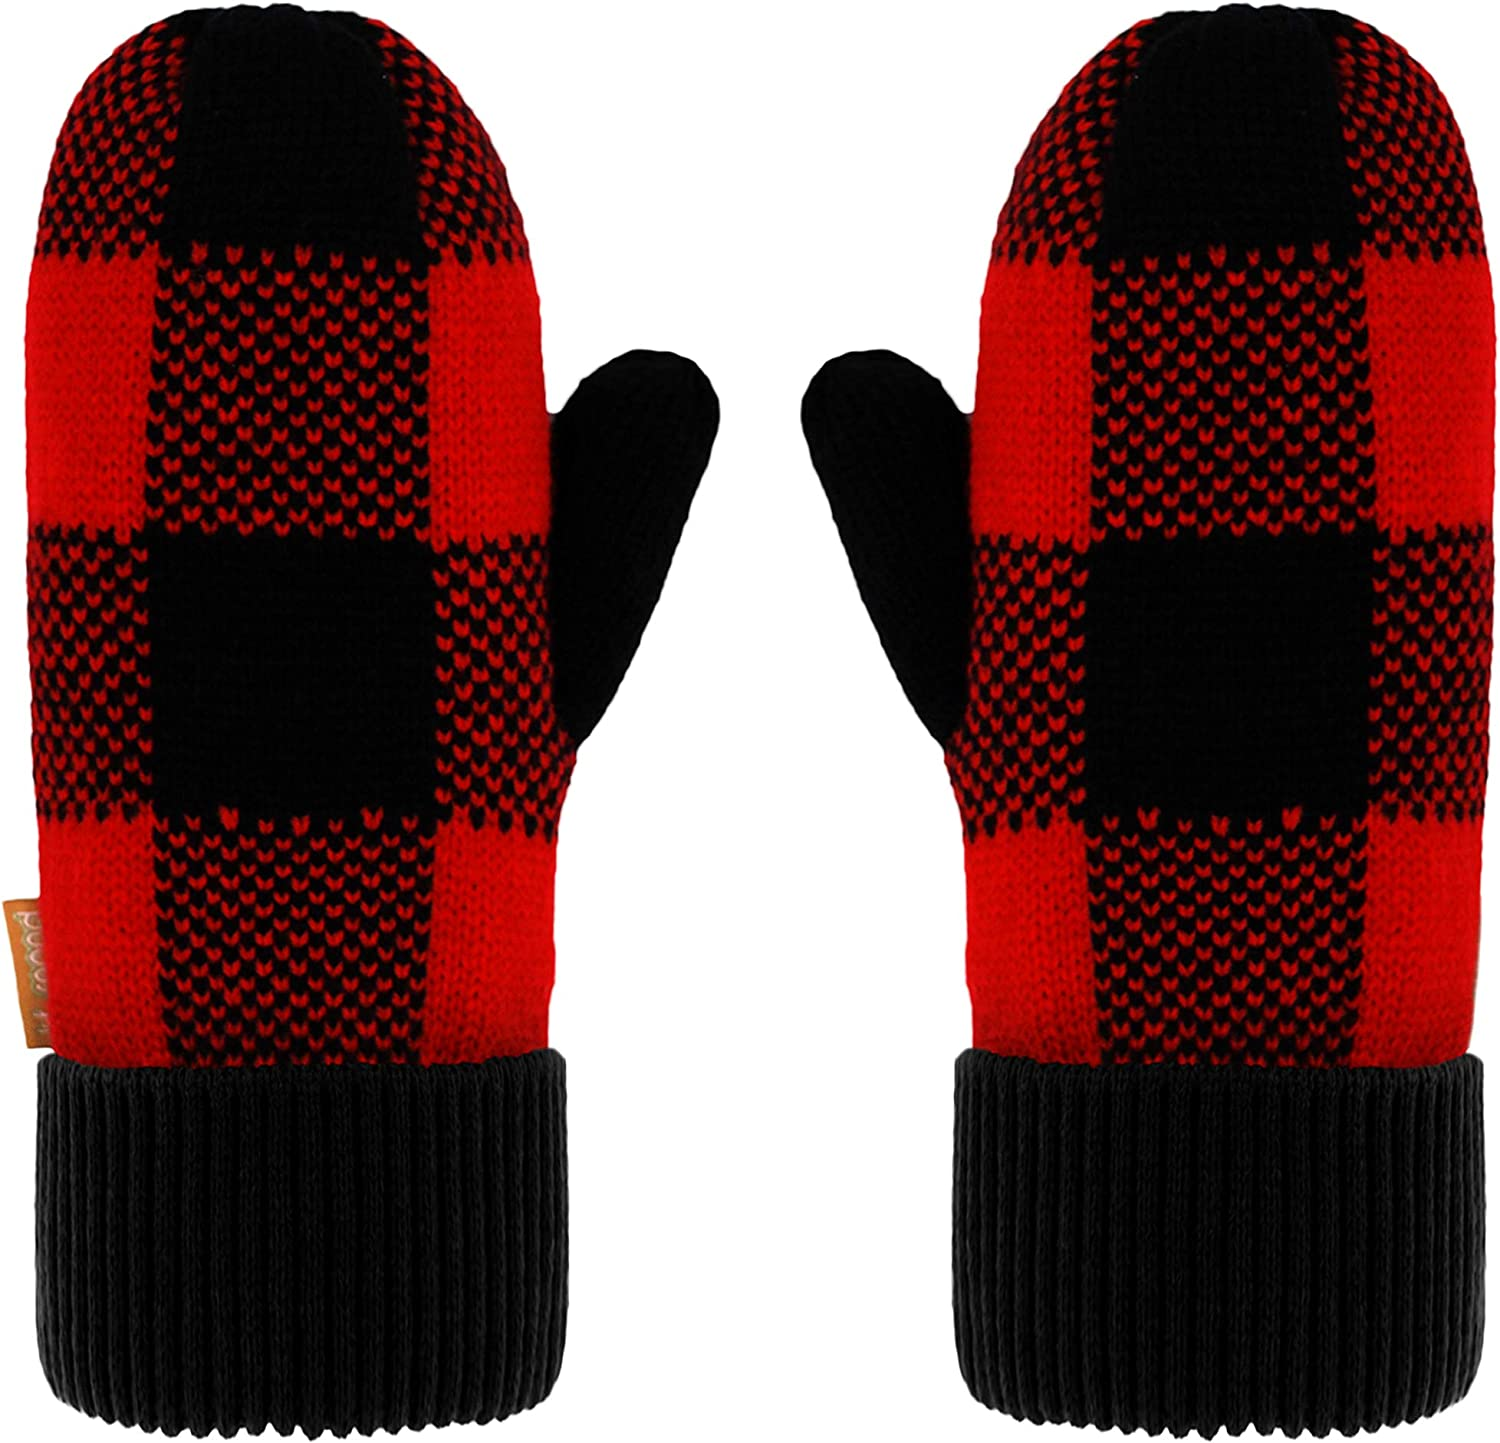 Pudus Chenille Cable Knit Winter Mittenss for Women, Fleece-Lined Warm Gloves